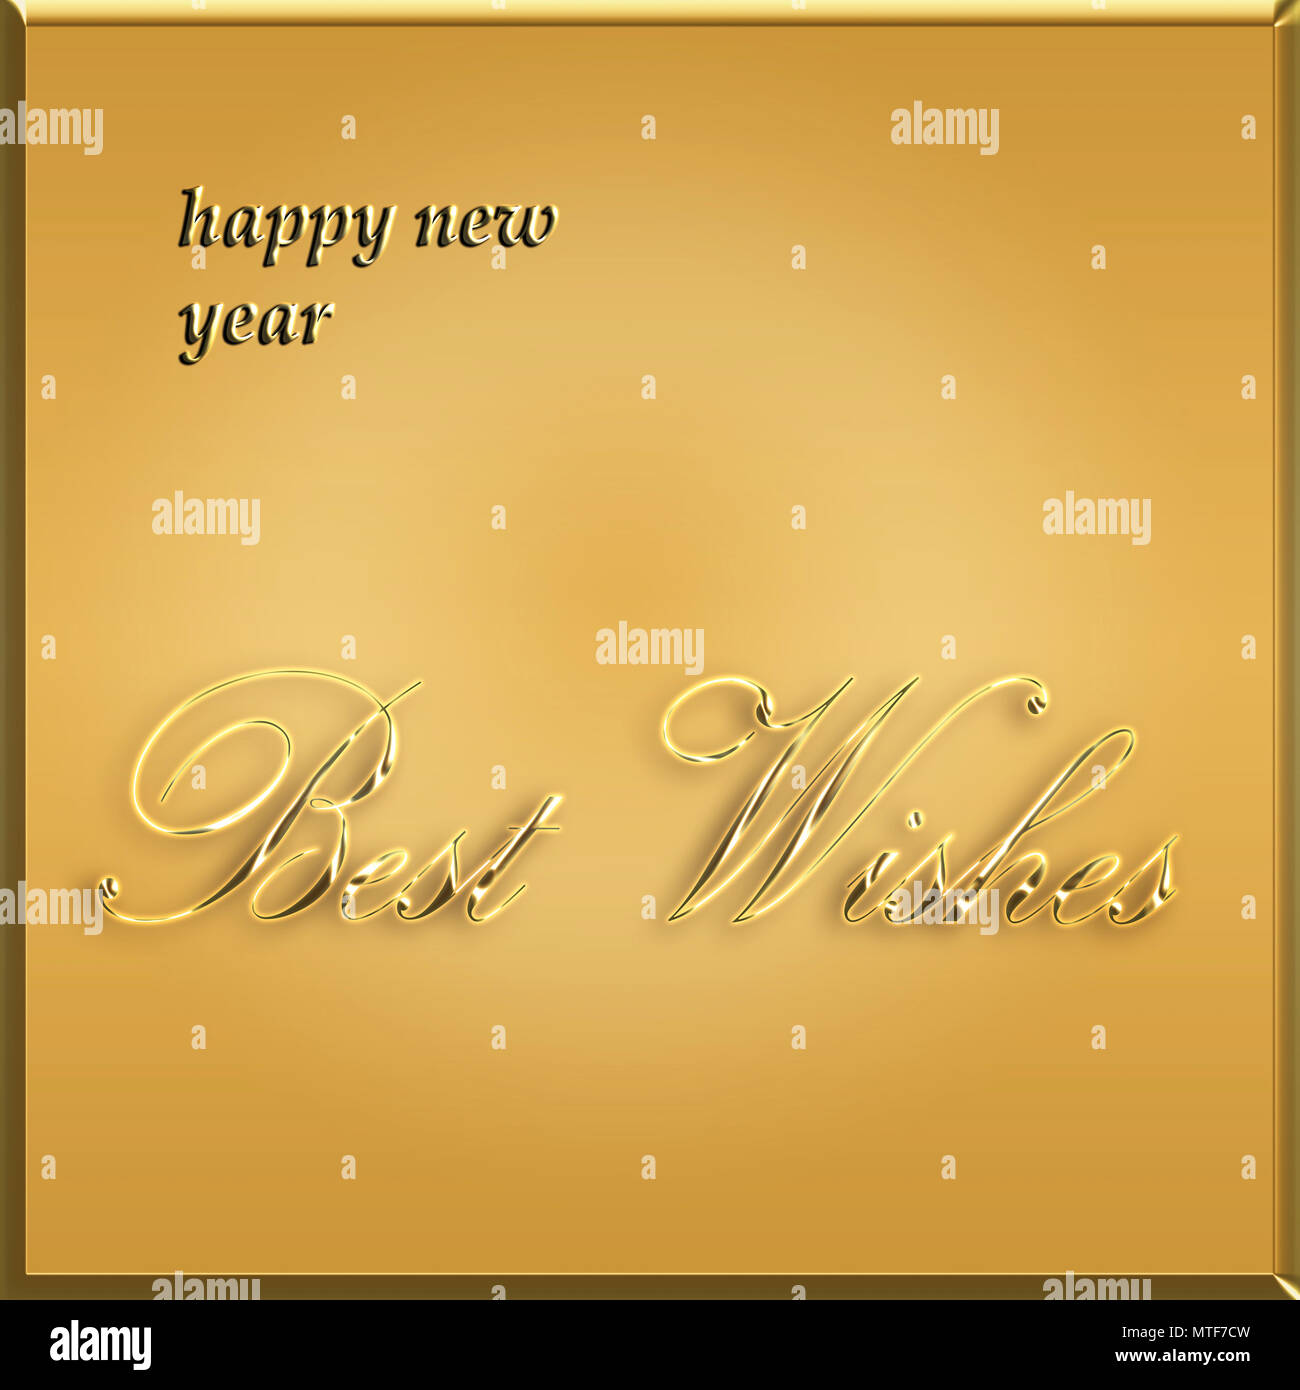 happy new year card best wishes golden card illustration